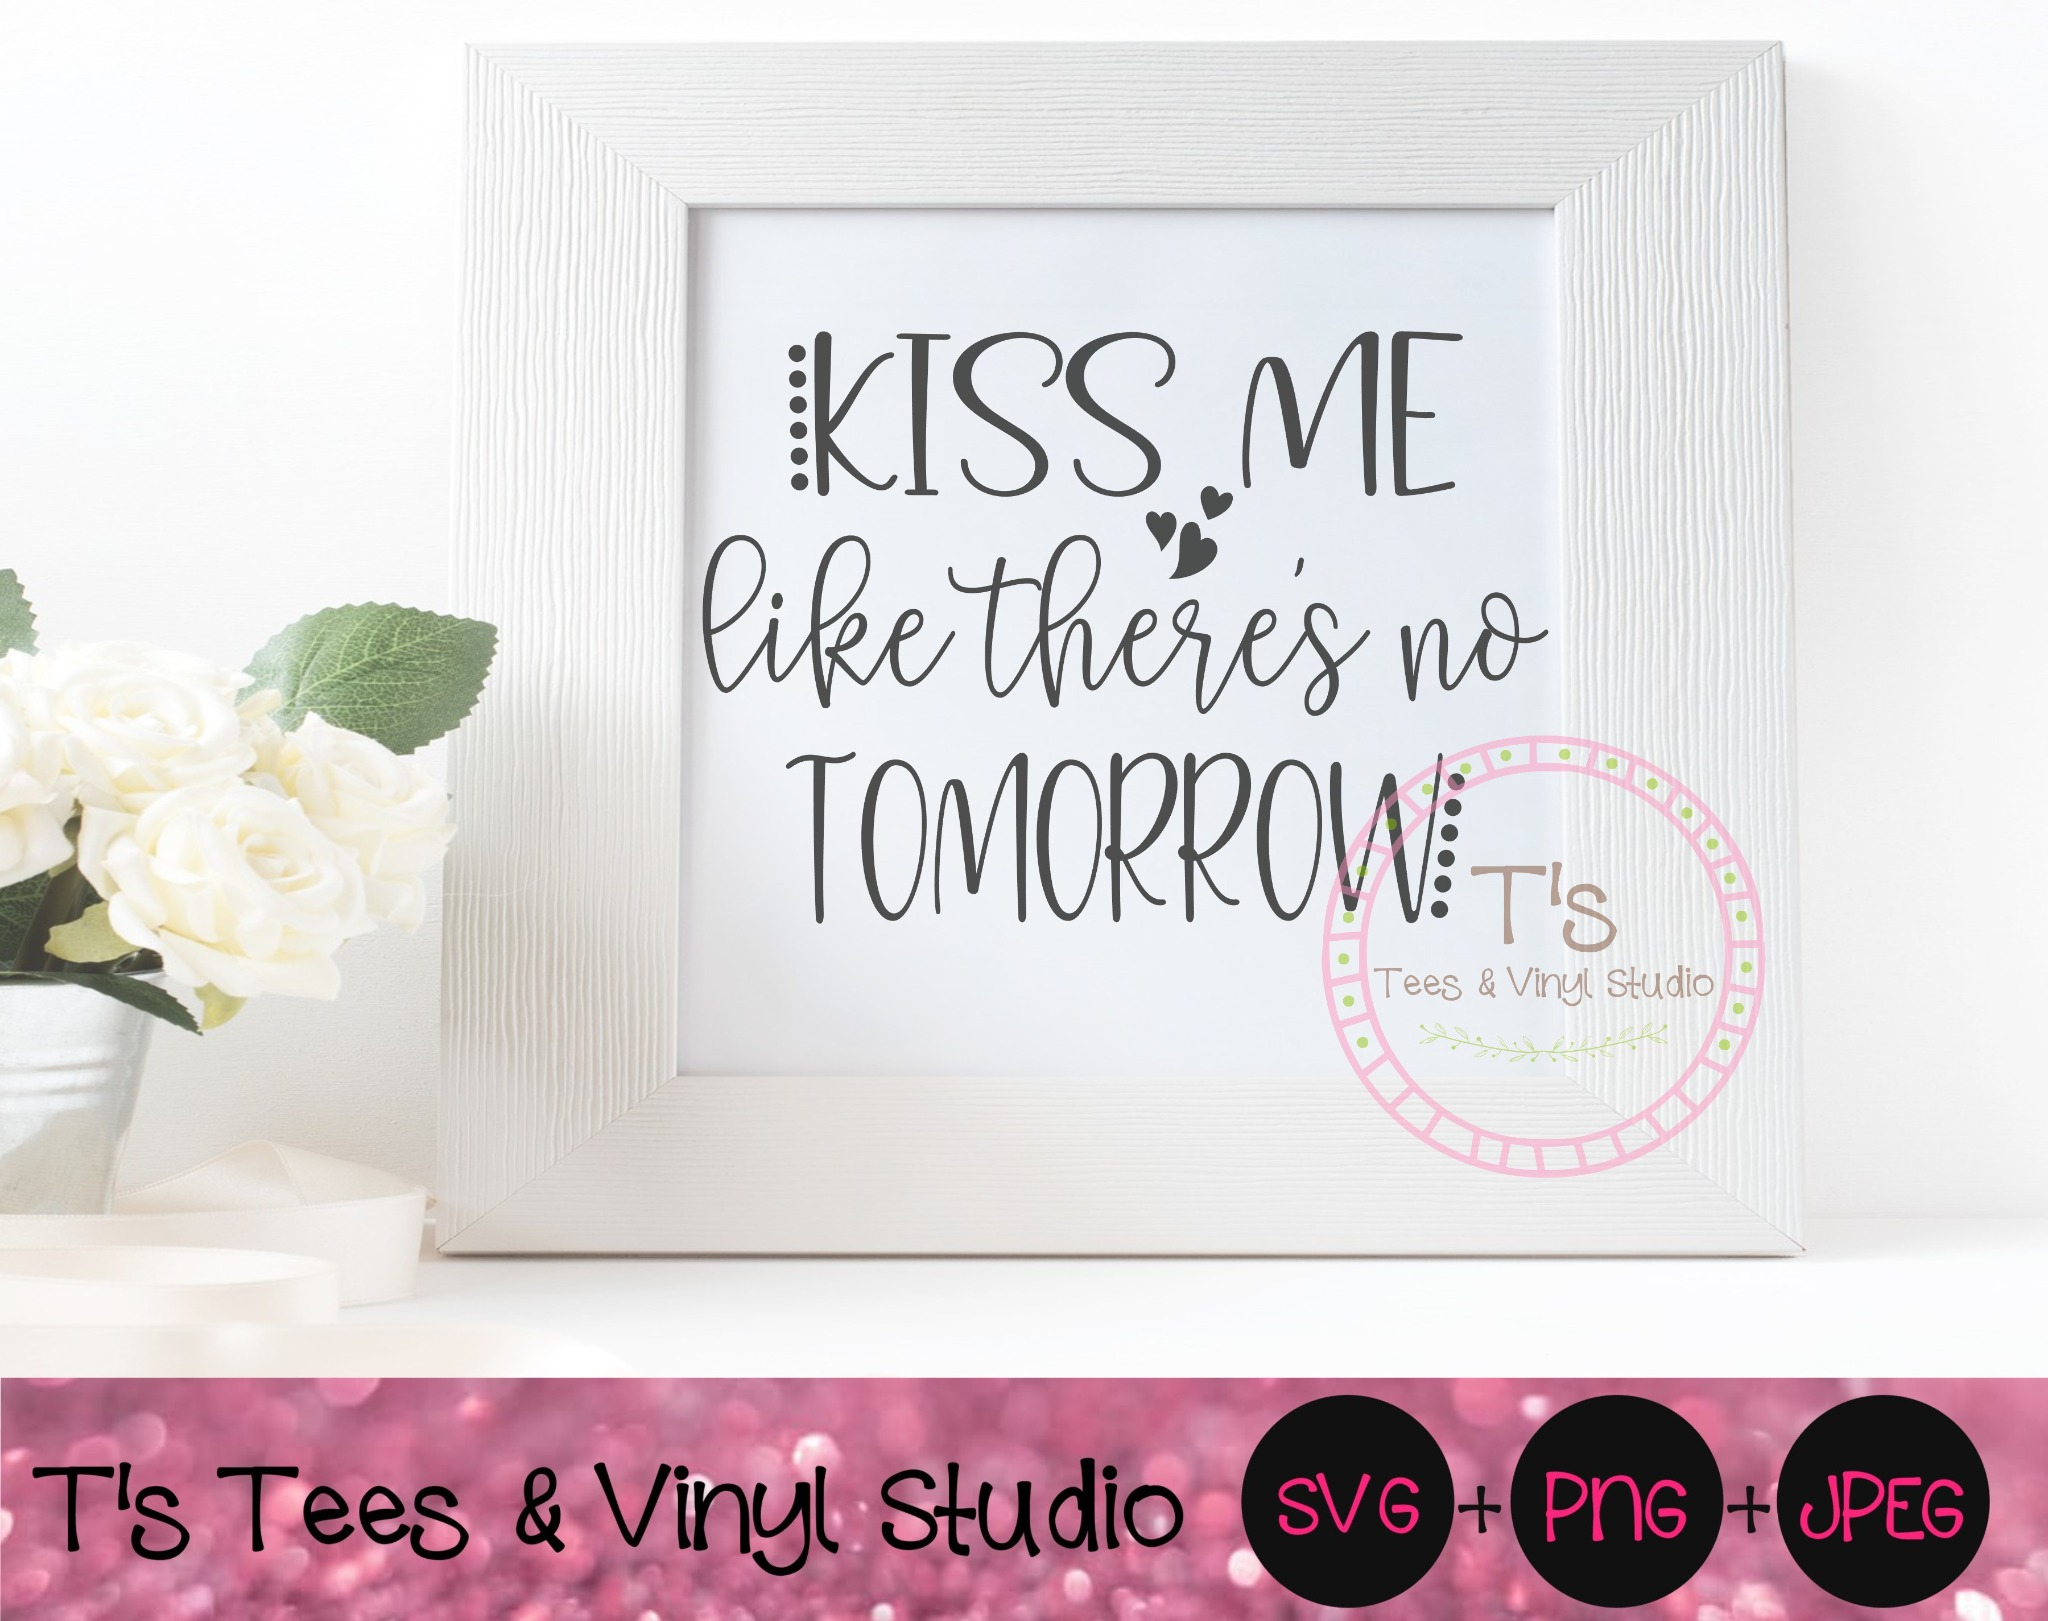 Kiss Me Svg, Like There's No Tomorrow, Life's Too Short, Live Life, Love Hard, Kiss Often, Lovers Pn